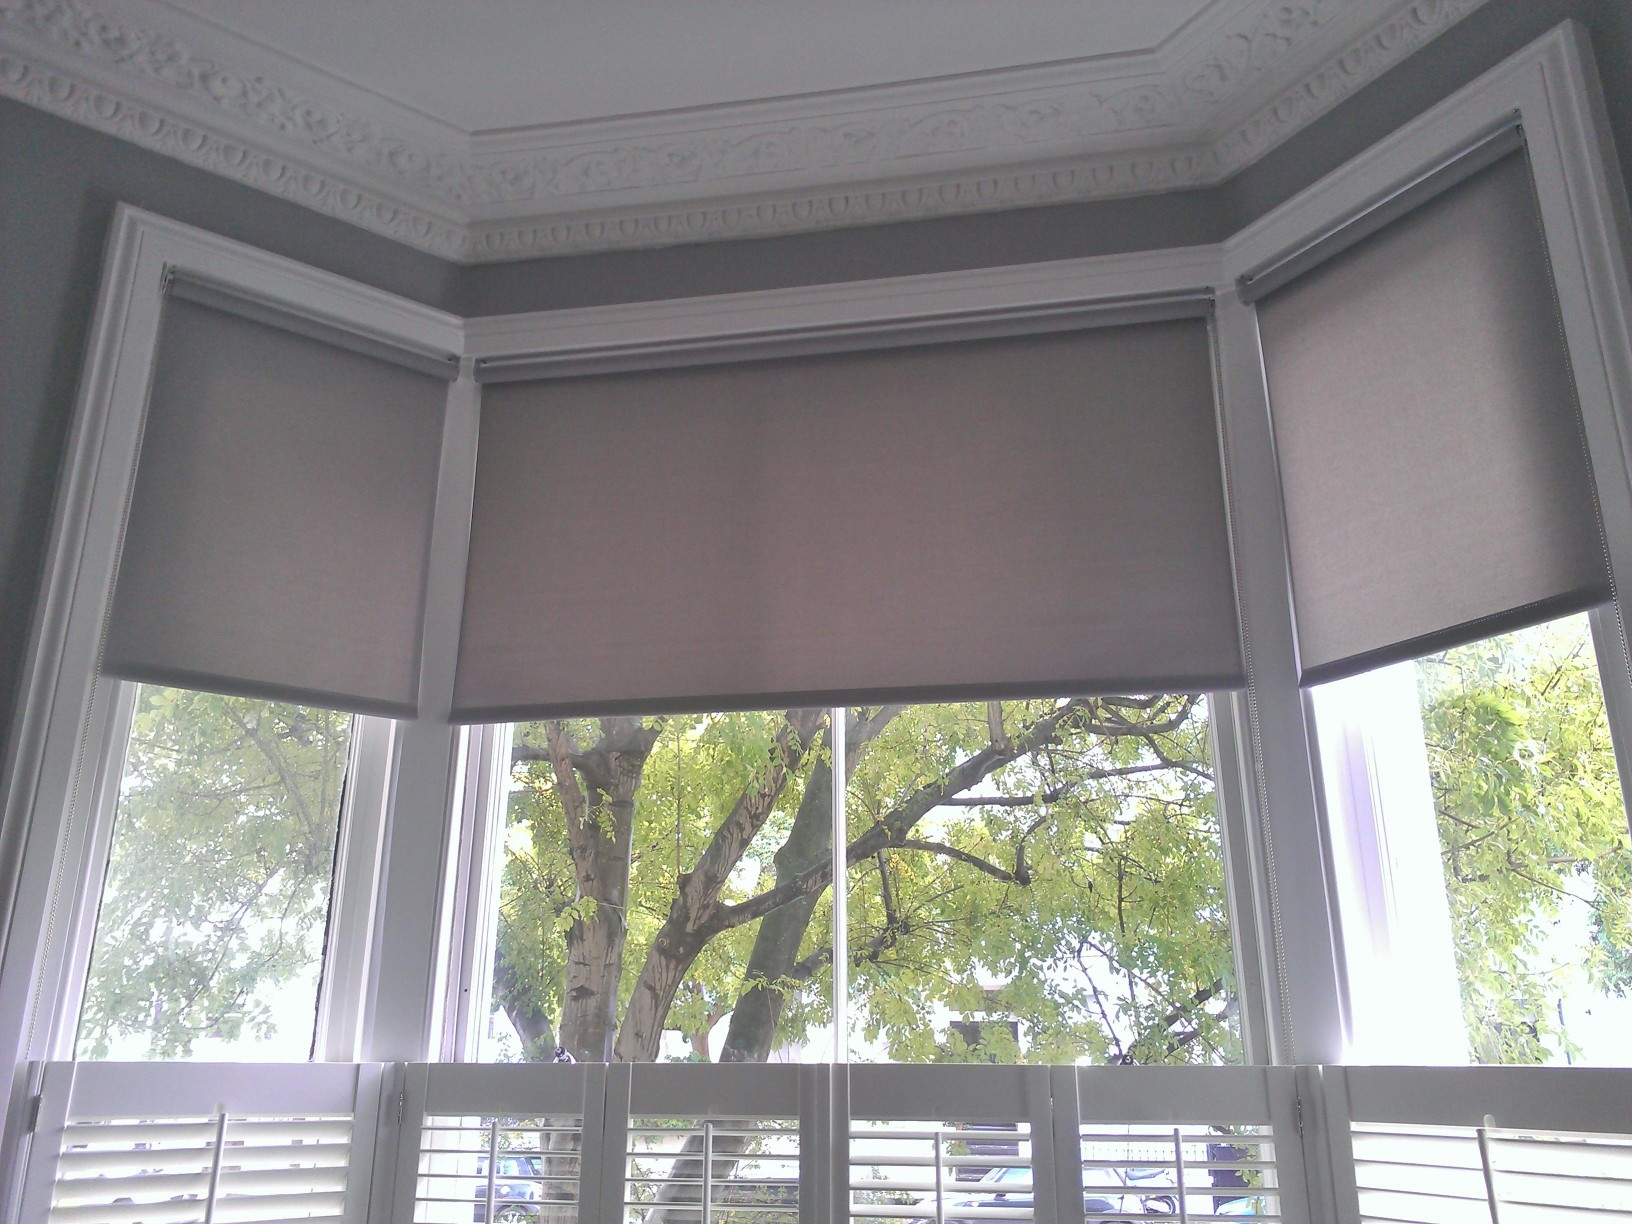 25 Best Ideas About Bay Window Blinds On Pinterest Bay Windows Regarding Bay Window Blinds And Curtains (Image 1 of 15)